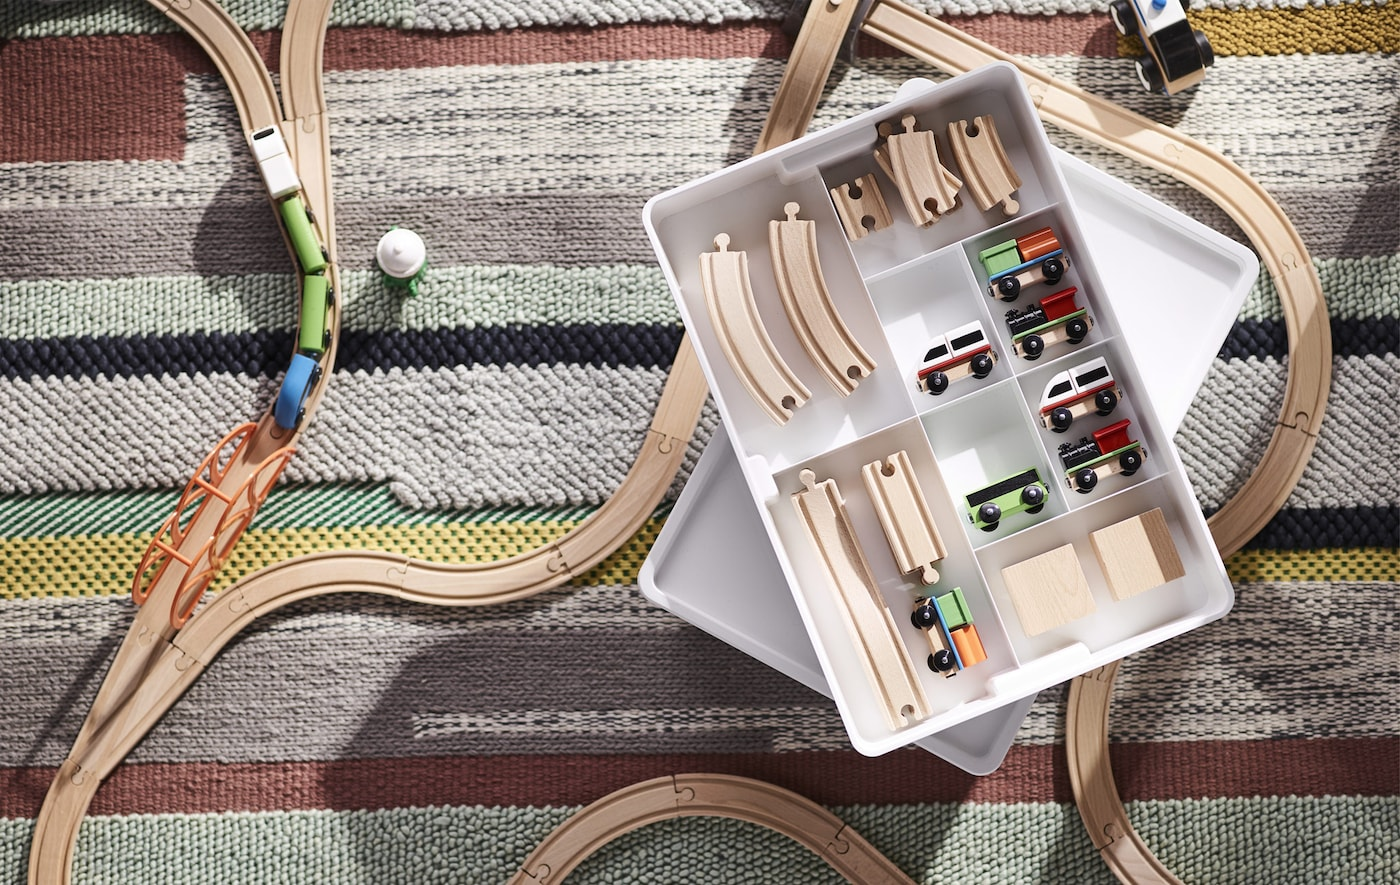 A wooden toy train set on a striped rug with a white storage box.